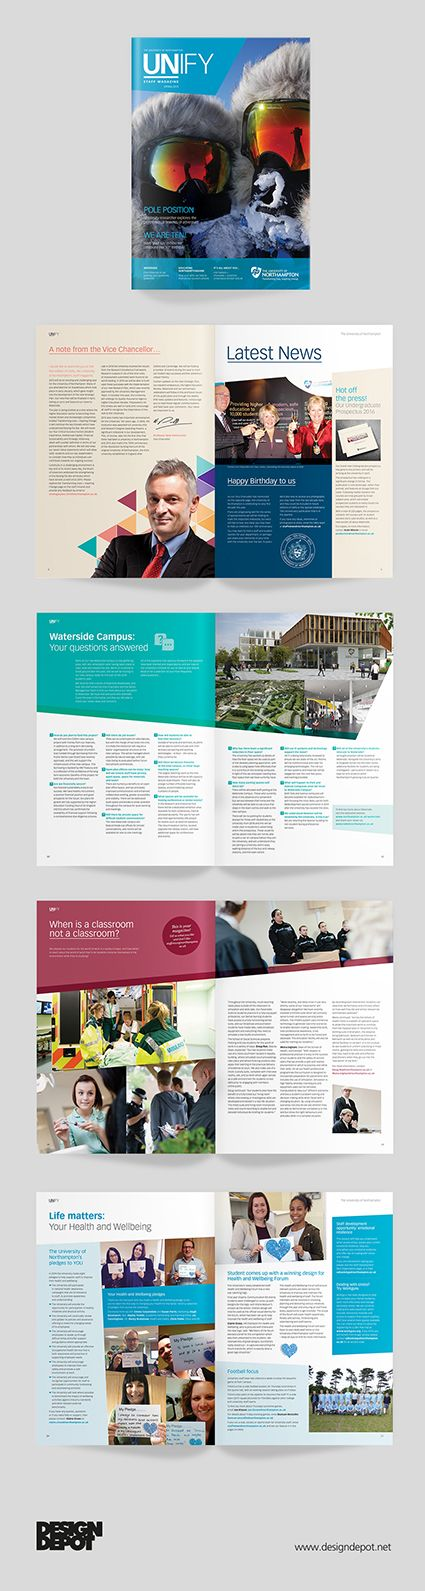 Northampton University prospectus, artwork, magazine, Unify, identity, branding, design depot, education, graphics, Northamptonshire, #DesignDepot